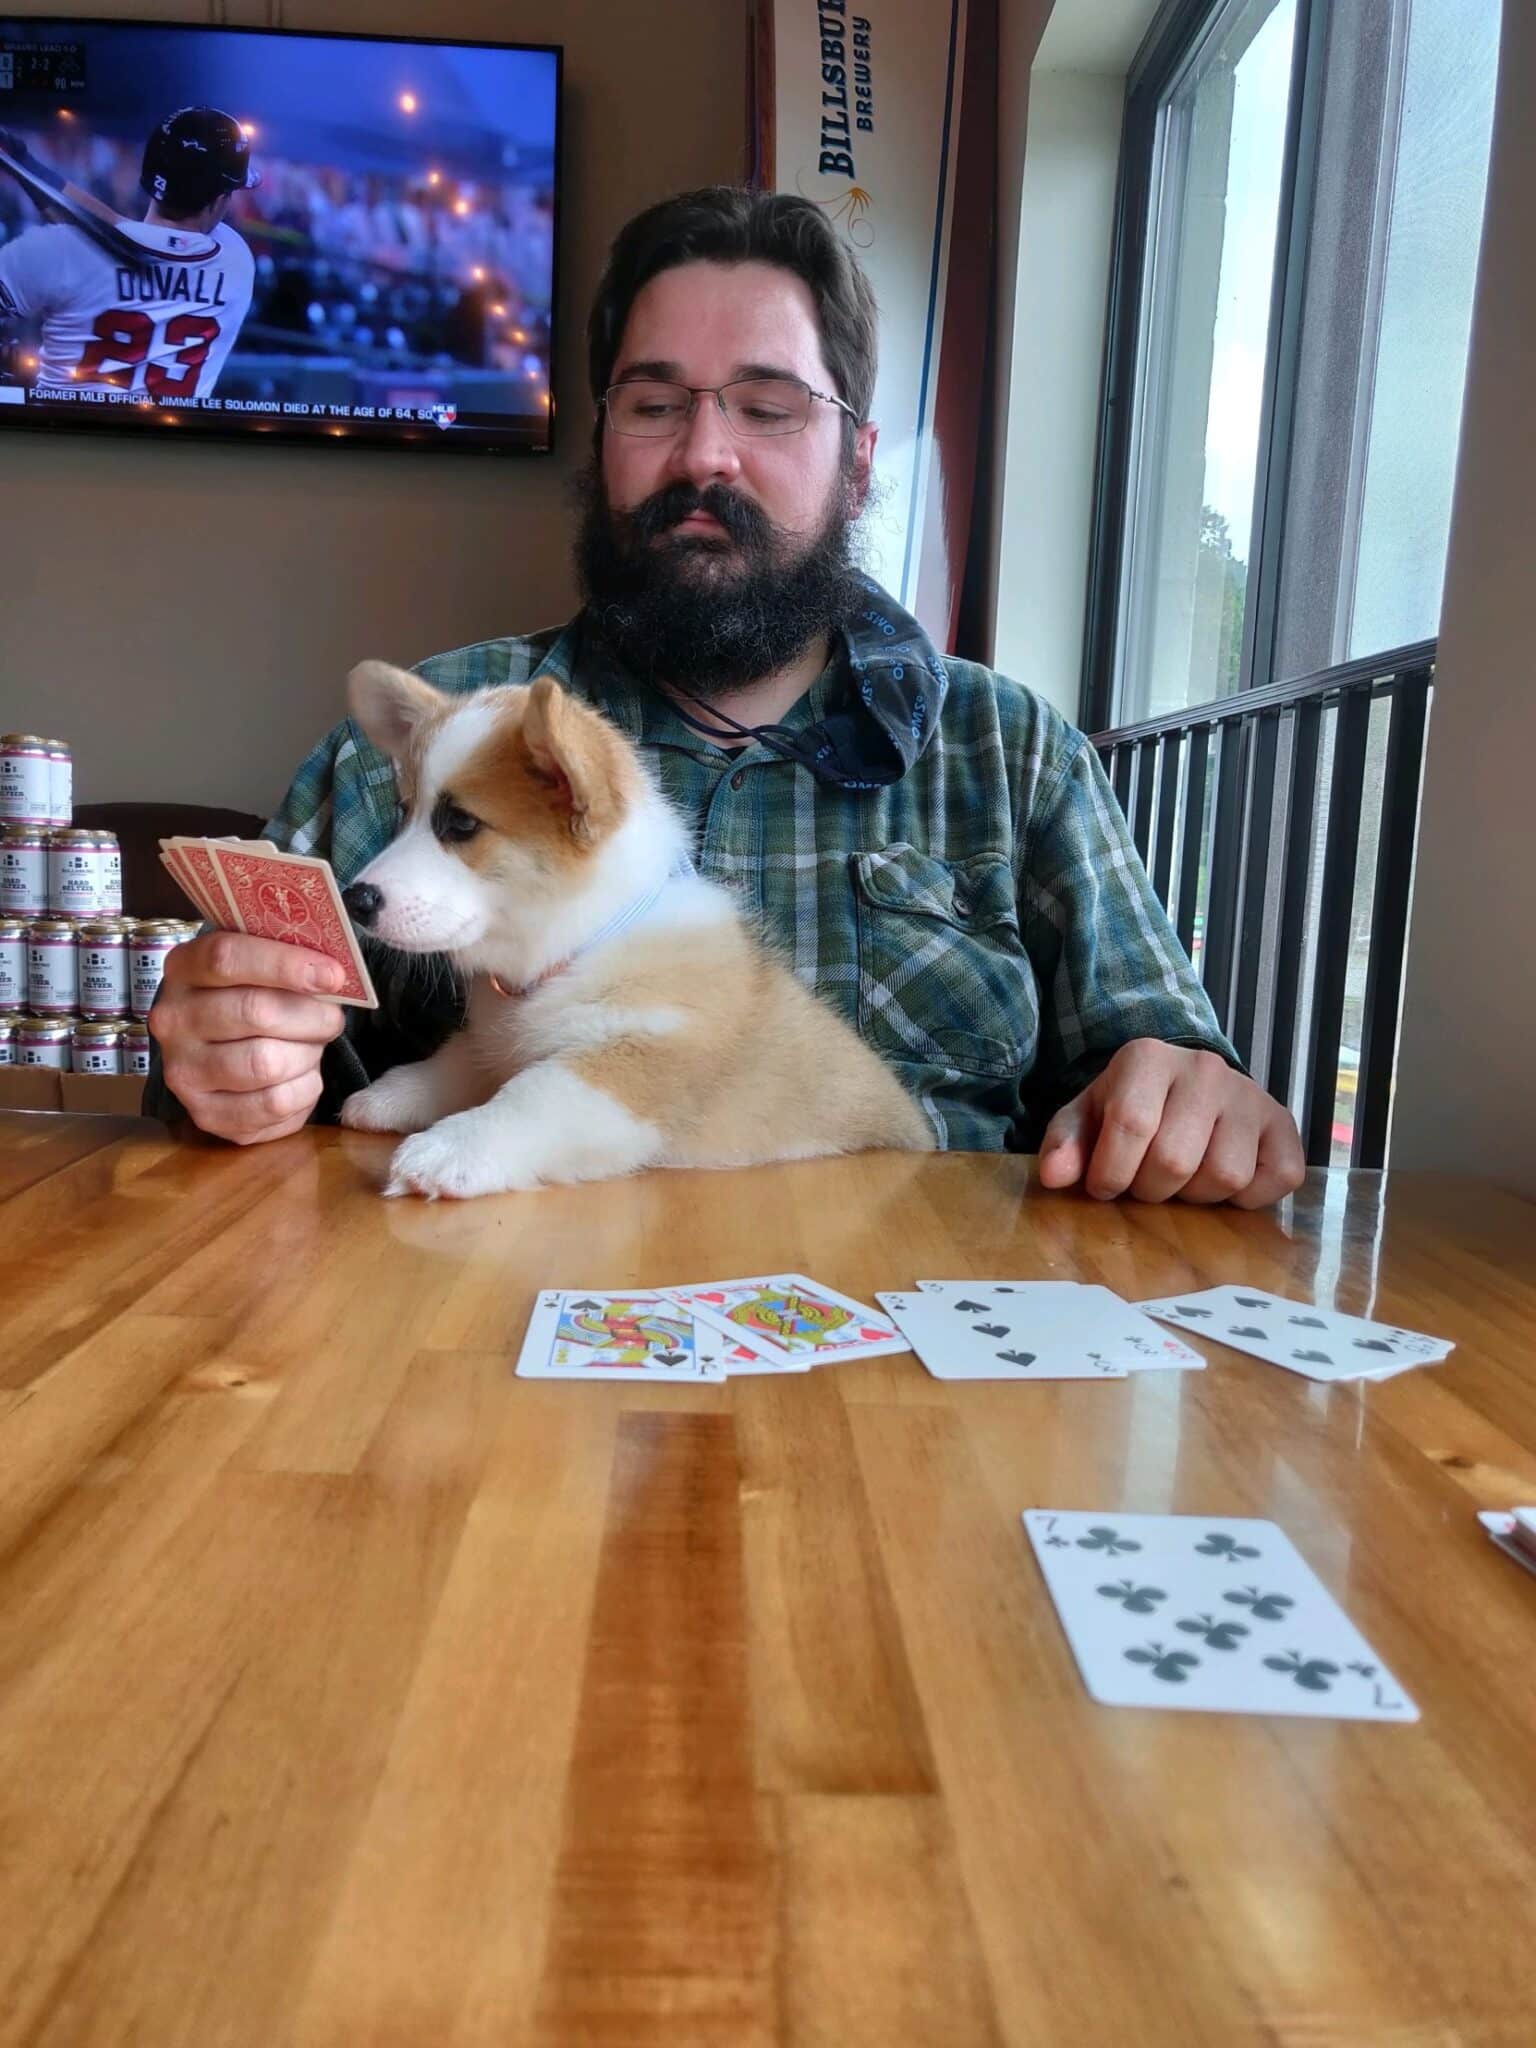 bearded man playing cards with corgi puppy